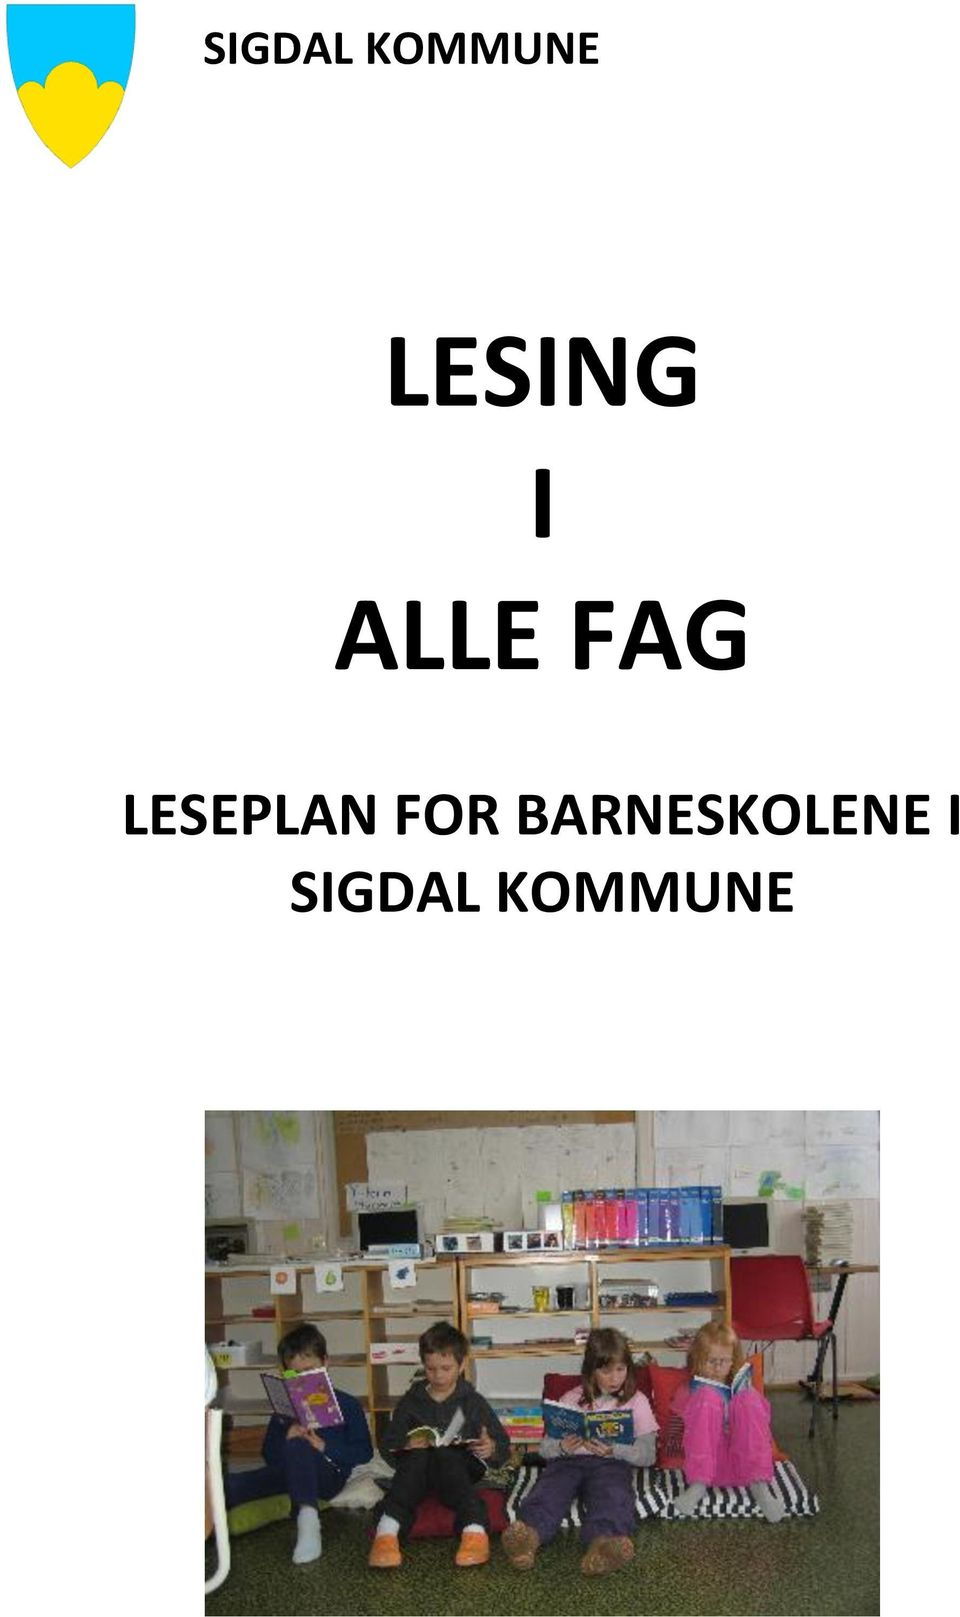 LESEPLAN FOR